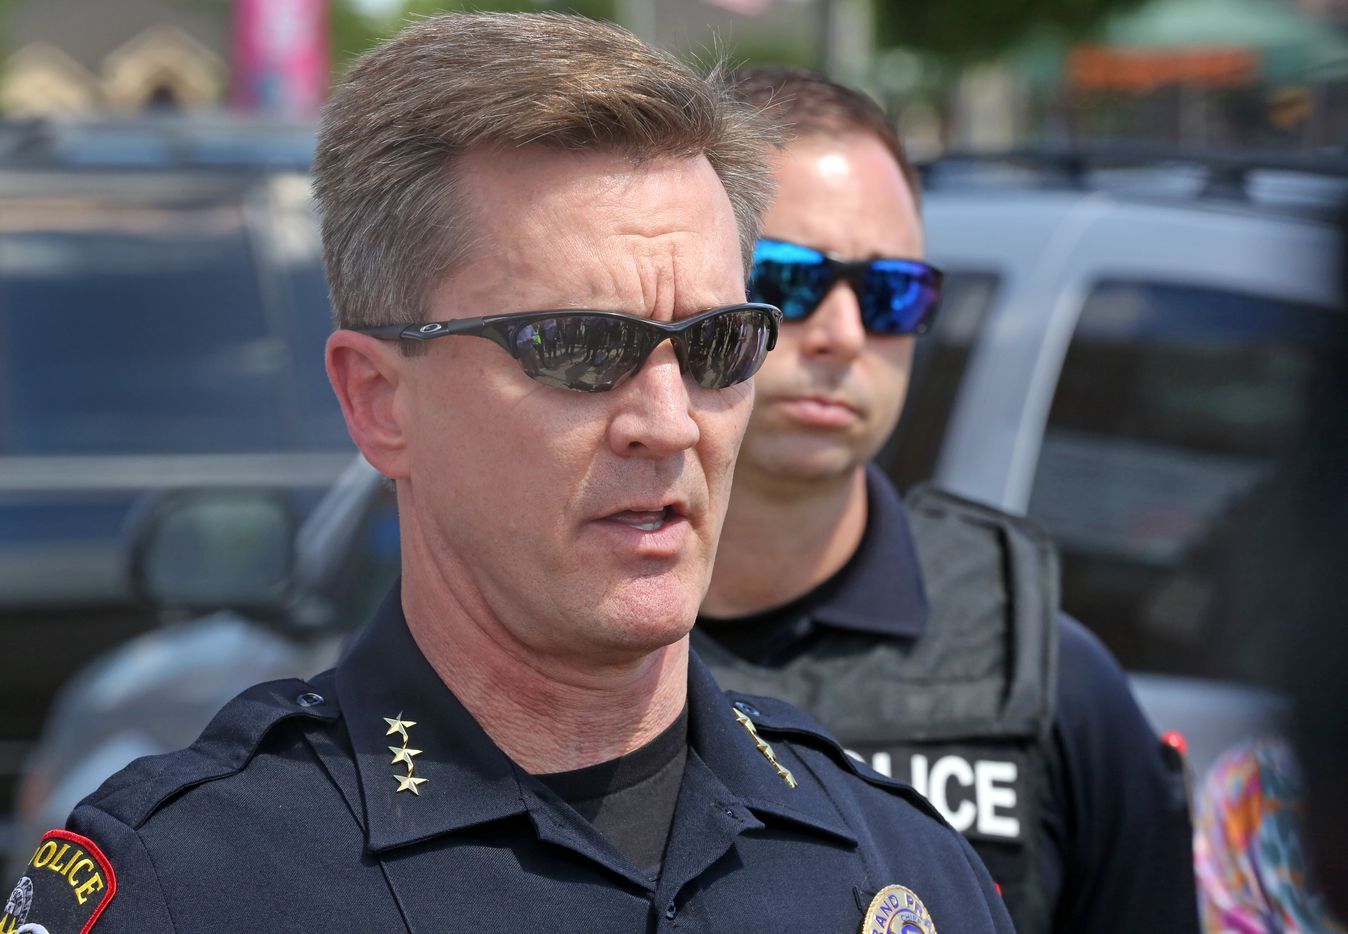 Grand Prairie police Chief Steve Dye explains the sequence of events as police confronted a man with a gun near the Ikea store.